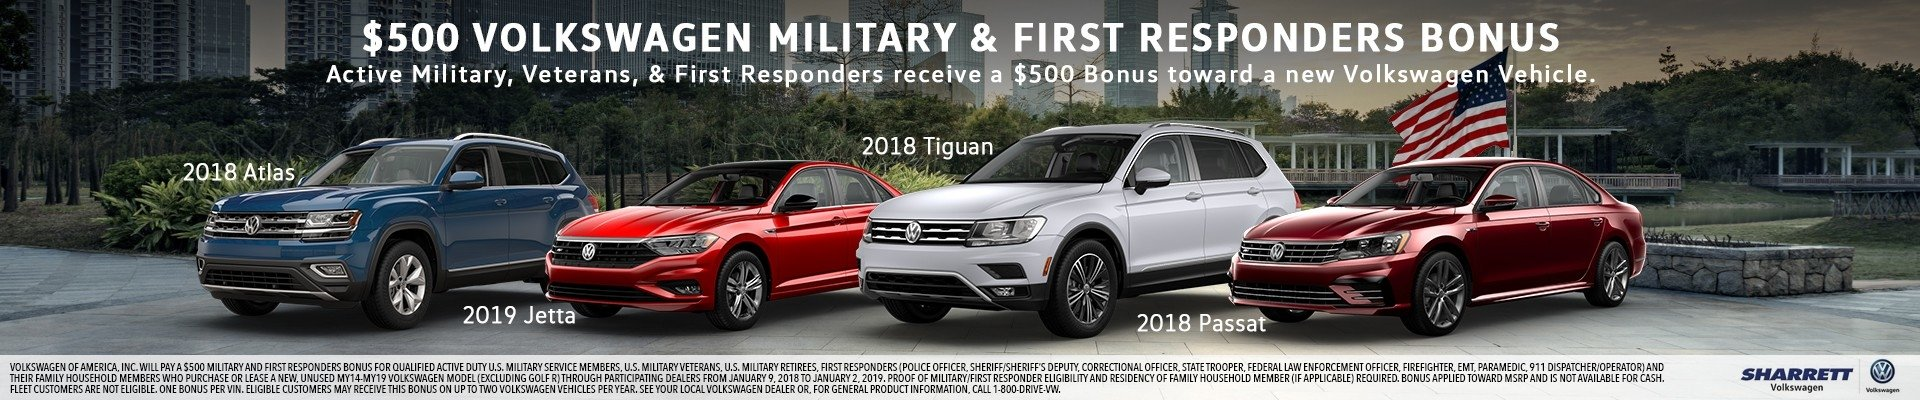 $500 VW Military & First Responders Bonus | Sharrett Volkswagen